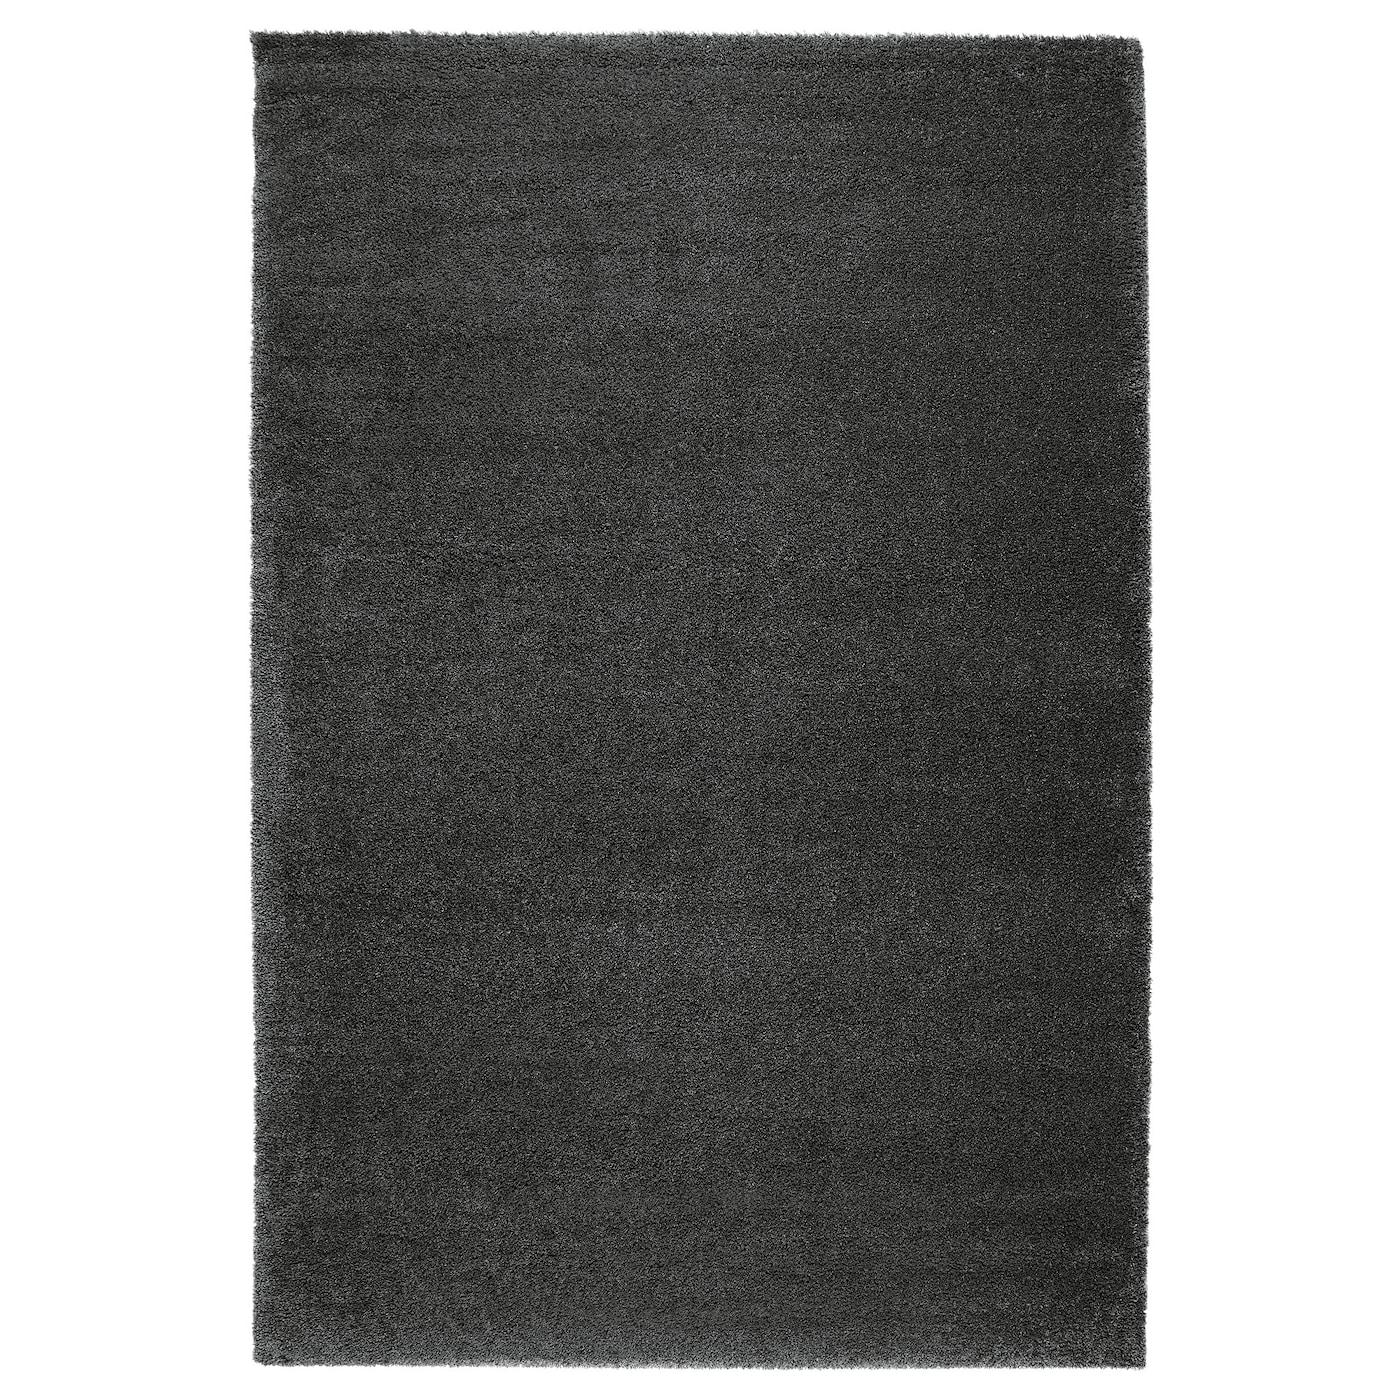 IKEA ÅDUM Rug, High Pile The Dense, Thick Pile Dampens Sound And Provides A